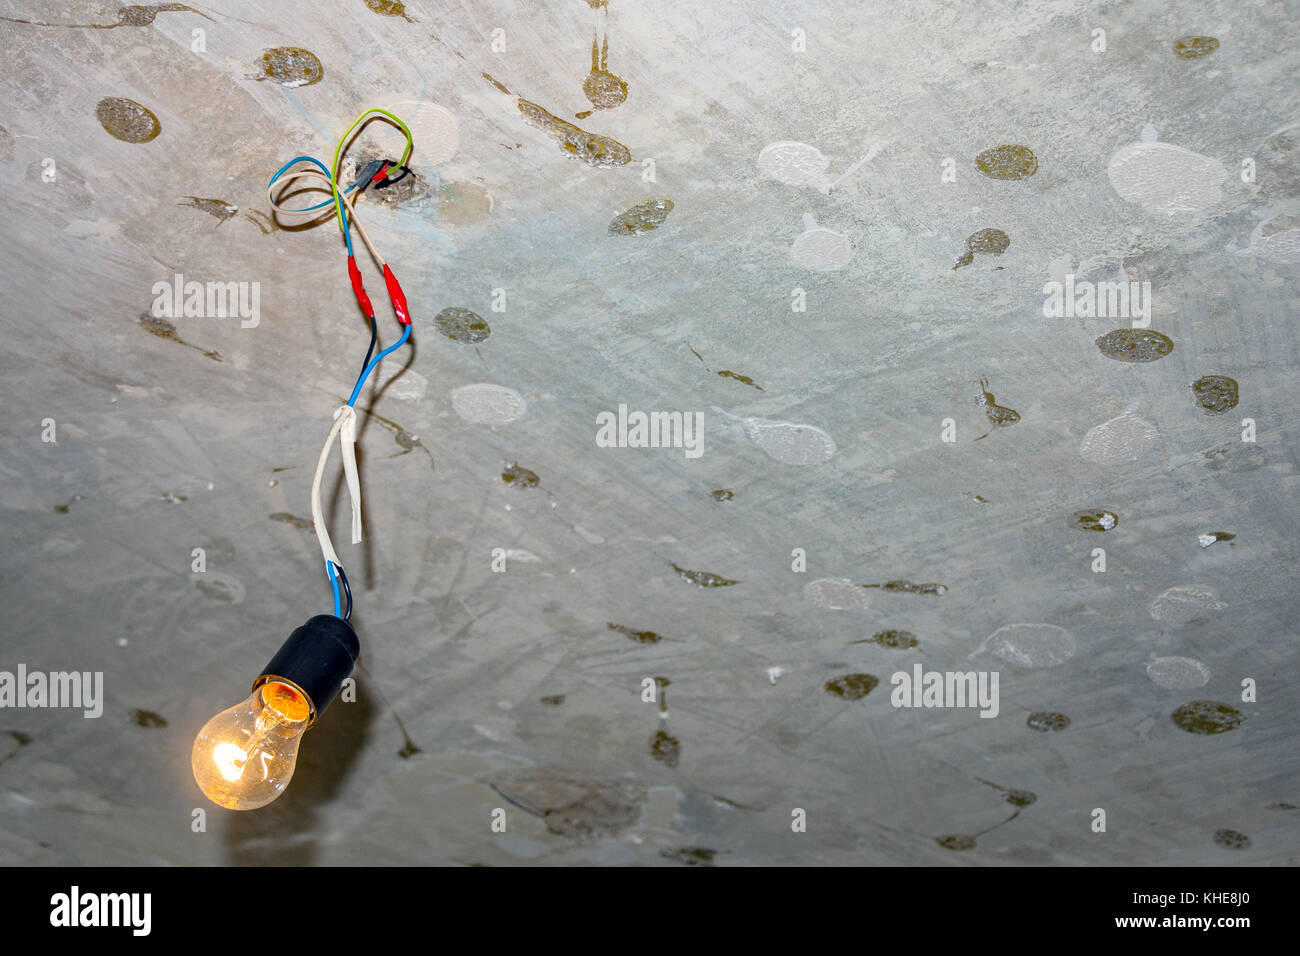 hight resolution of bad wiring leading to the bulb stock image